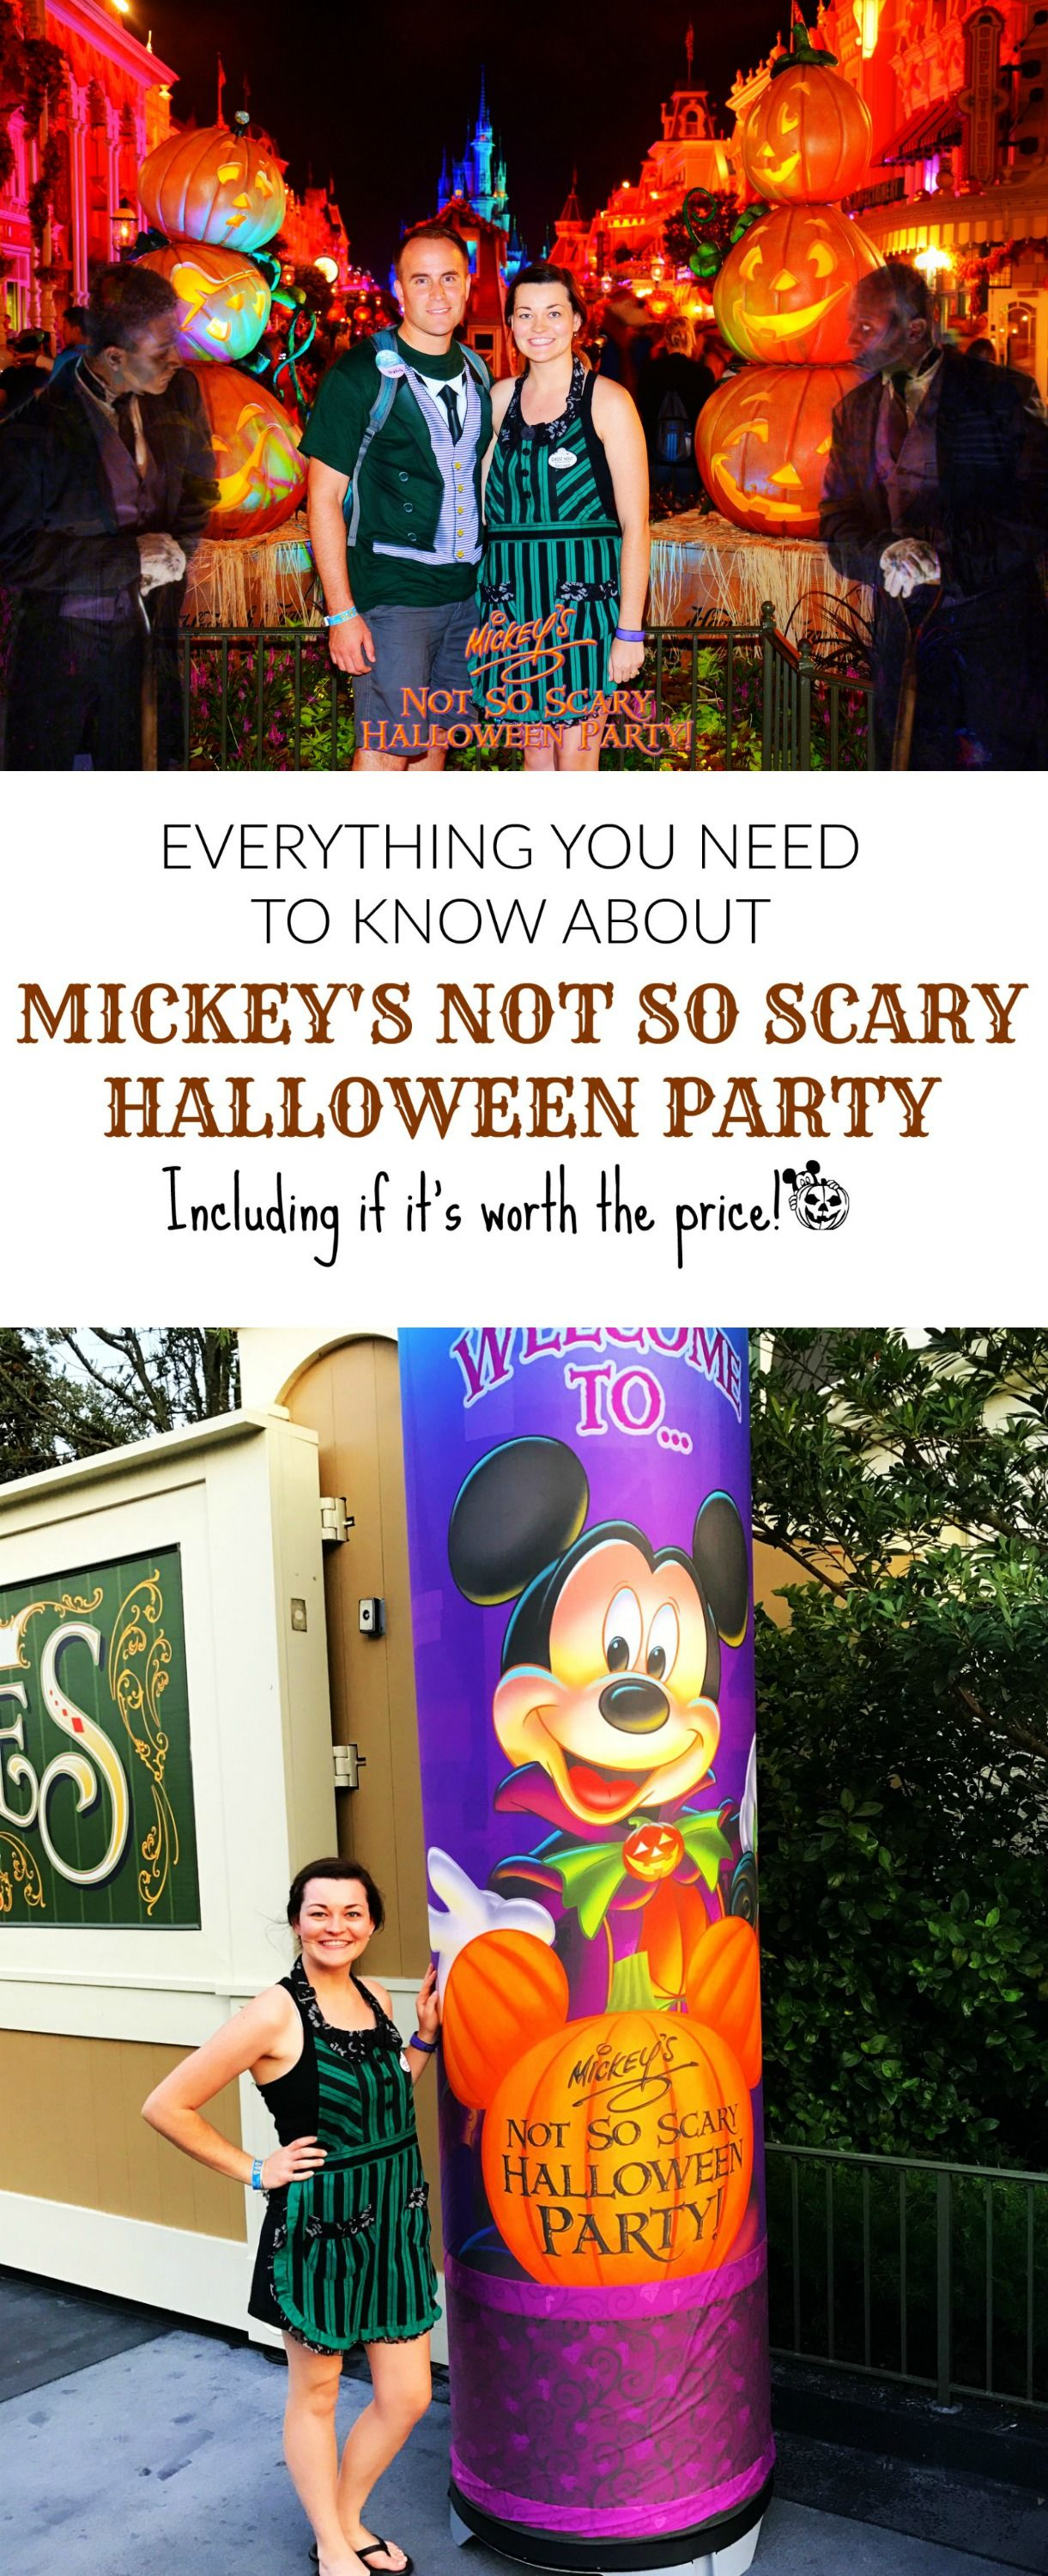 Mickey's Not So Scary Halloween Party Guide and Review | Posts ...